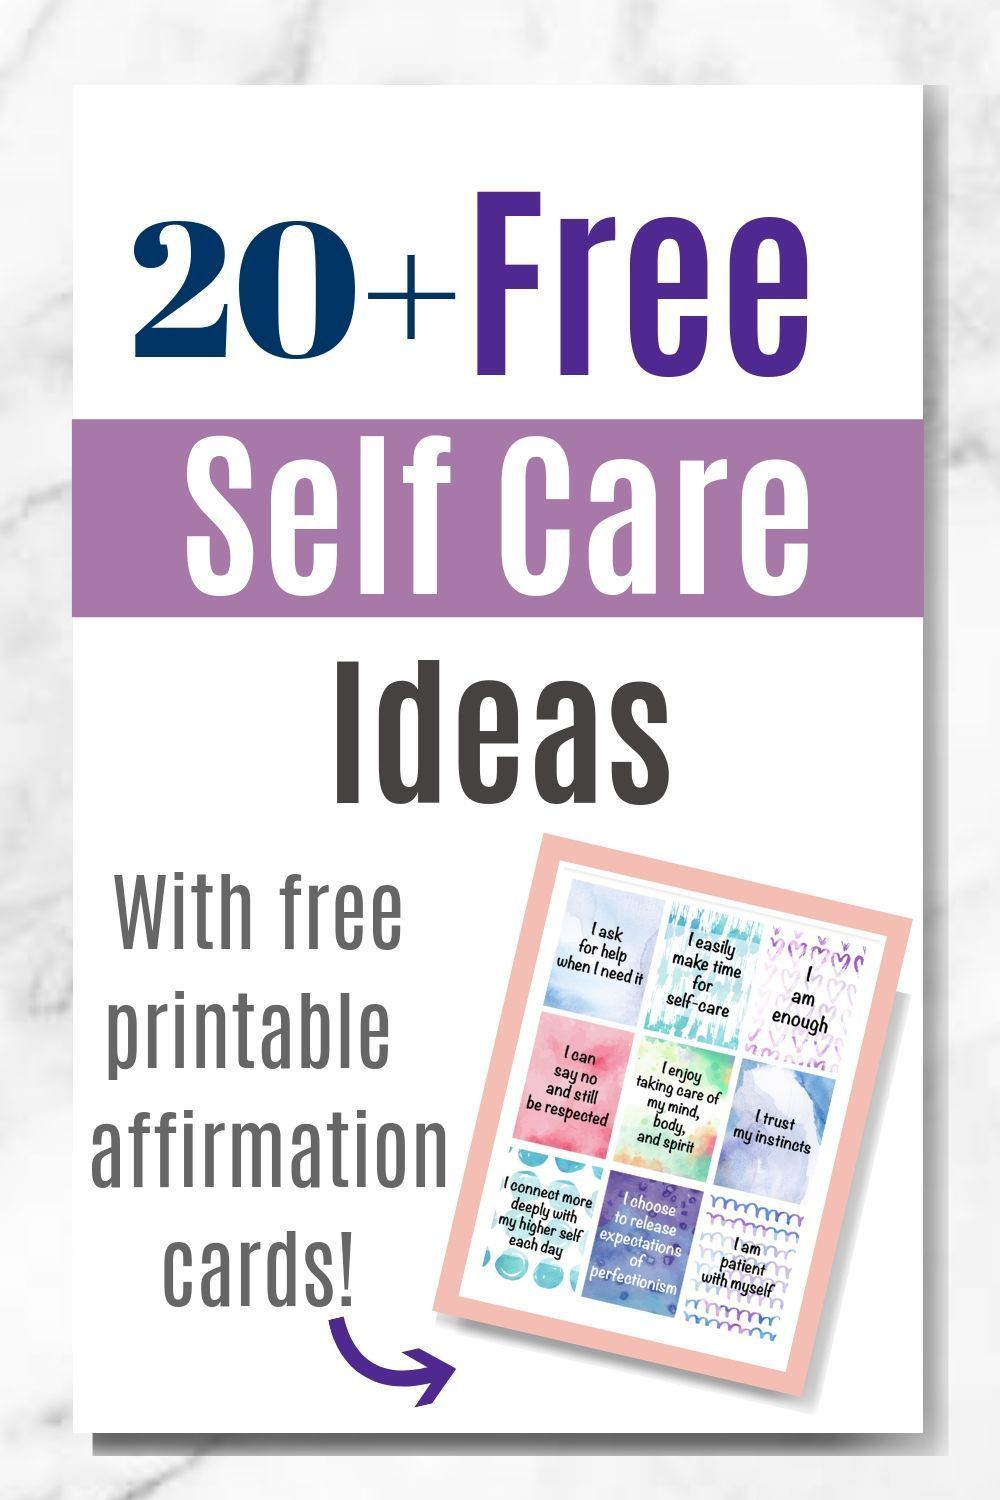 Free selfcare ideas for overwhelmed moms plus free